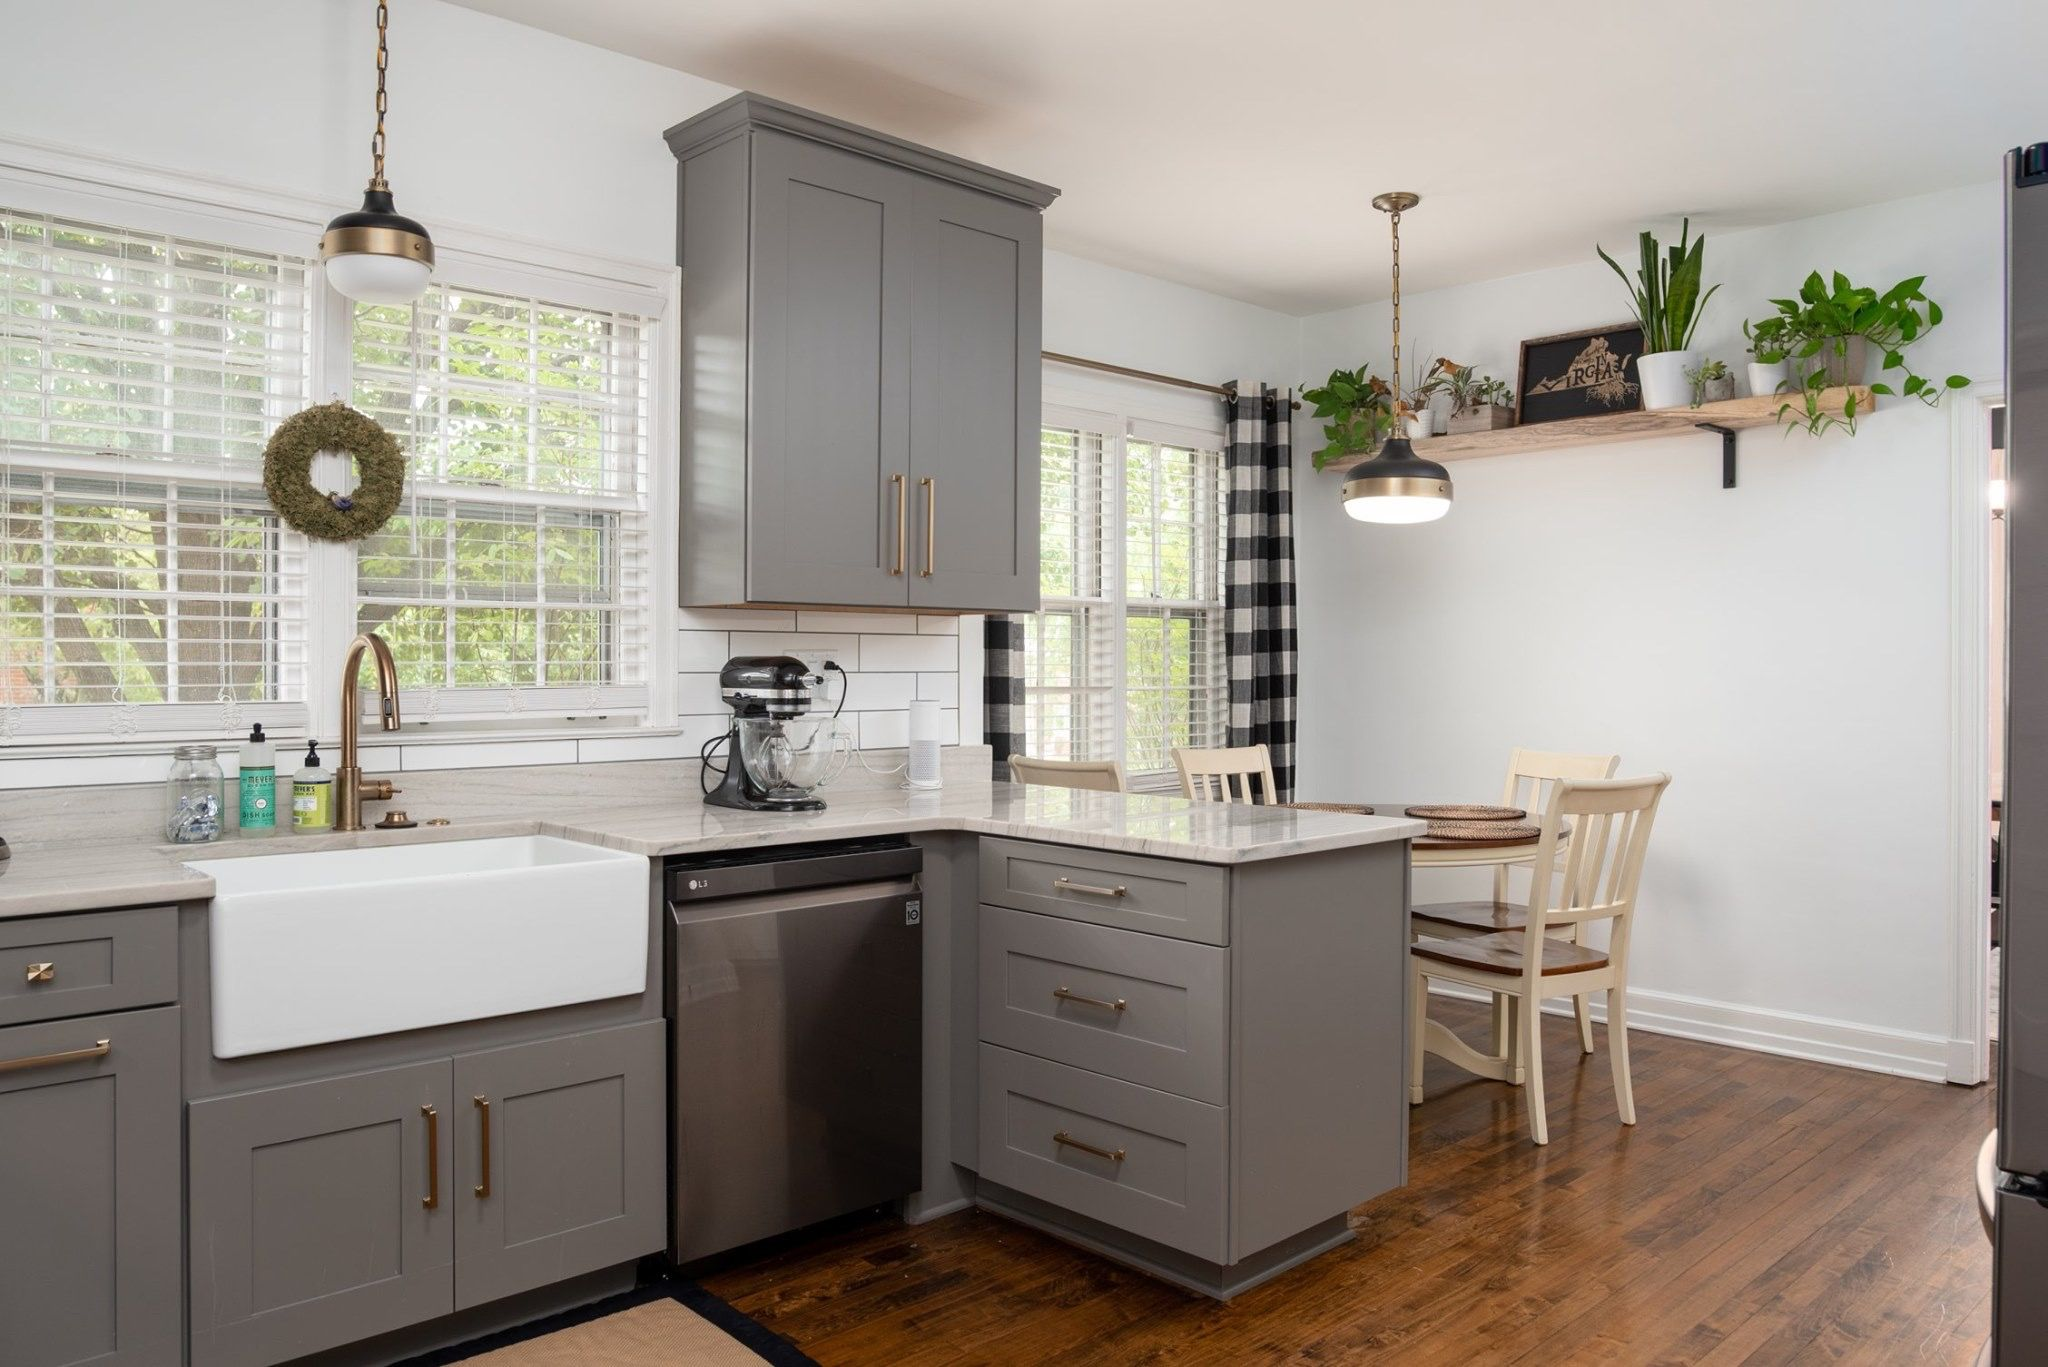 Buffalo plaid accents grey gold hardware and